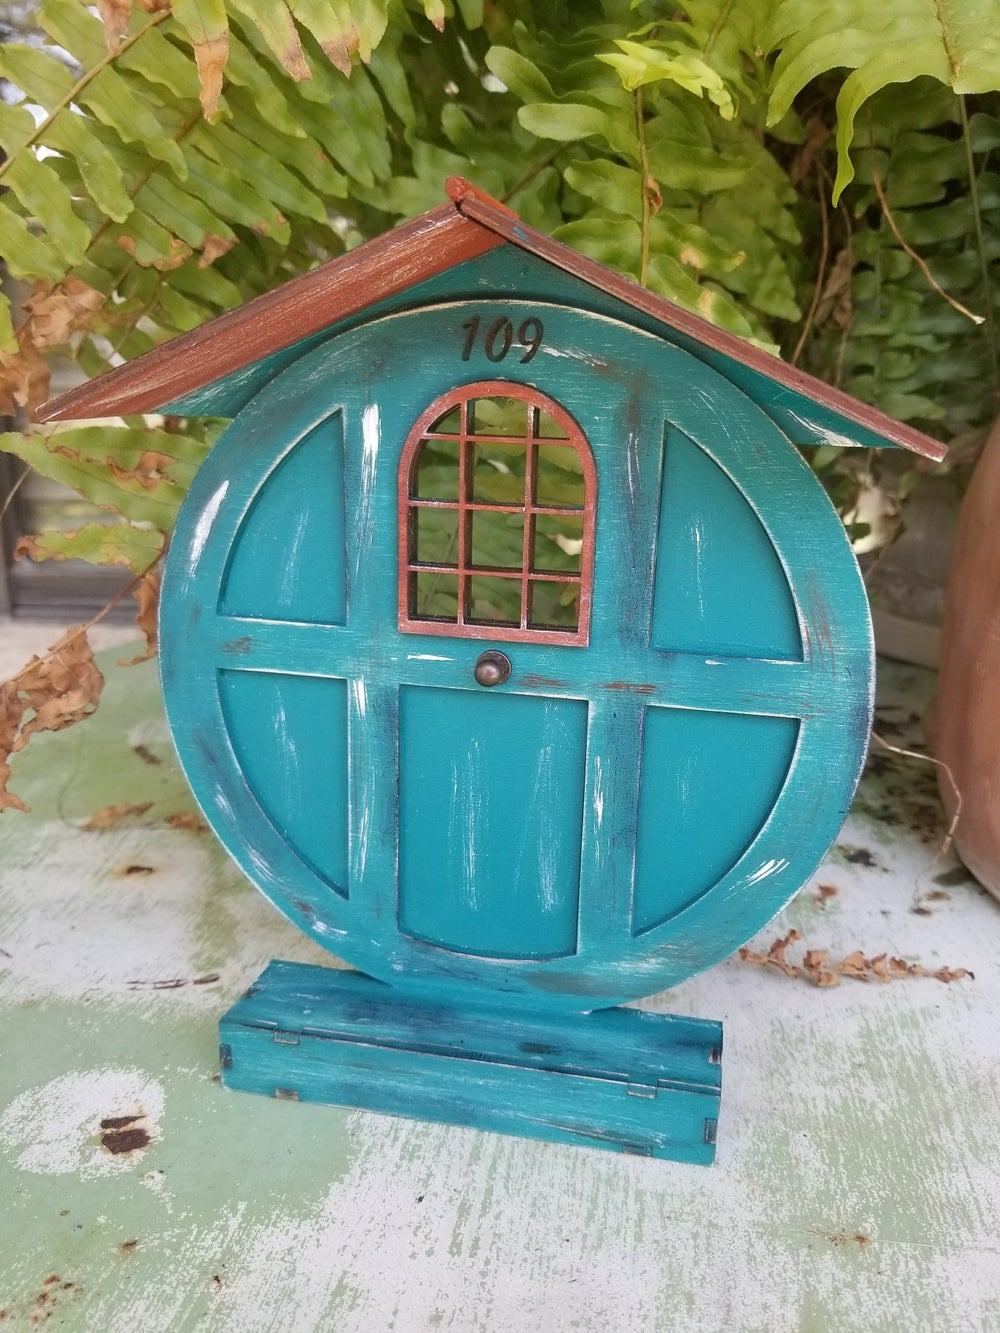 Image of #109 Fairy Lane-Fairy Door Wood Kit